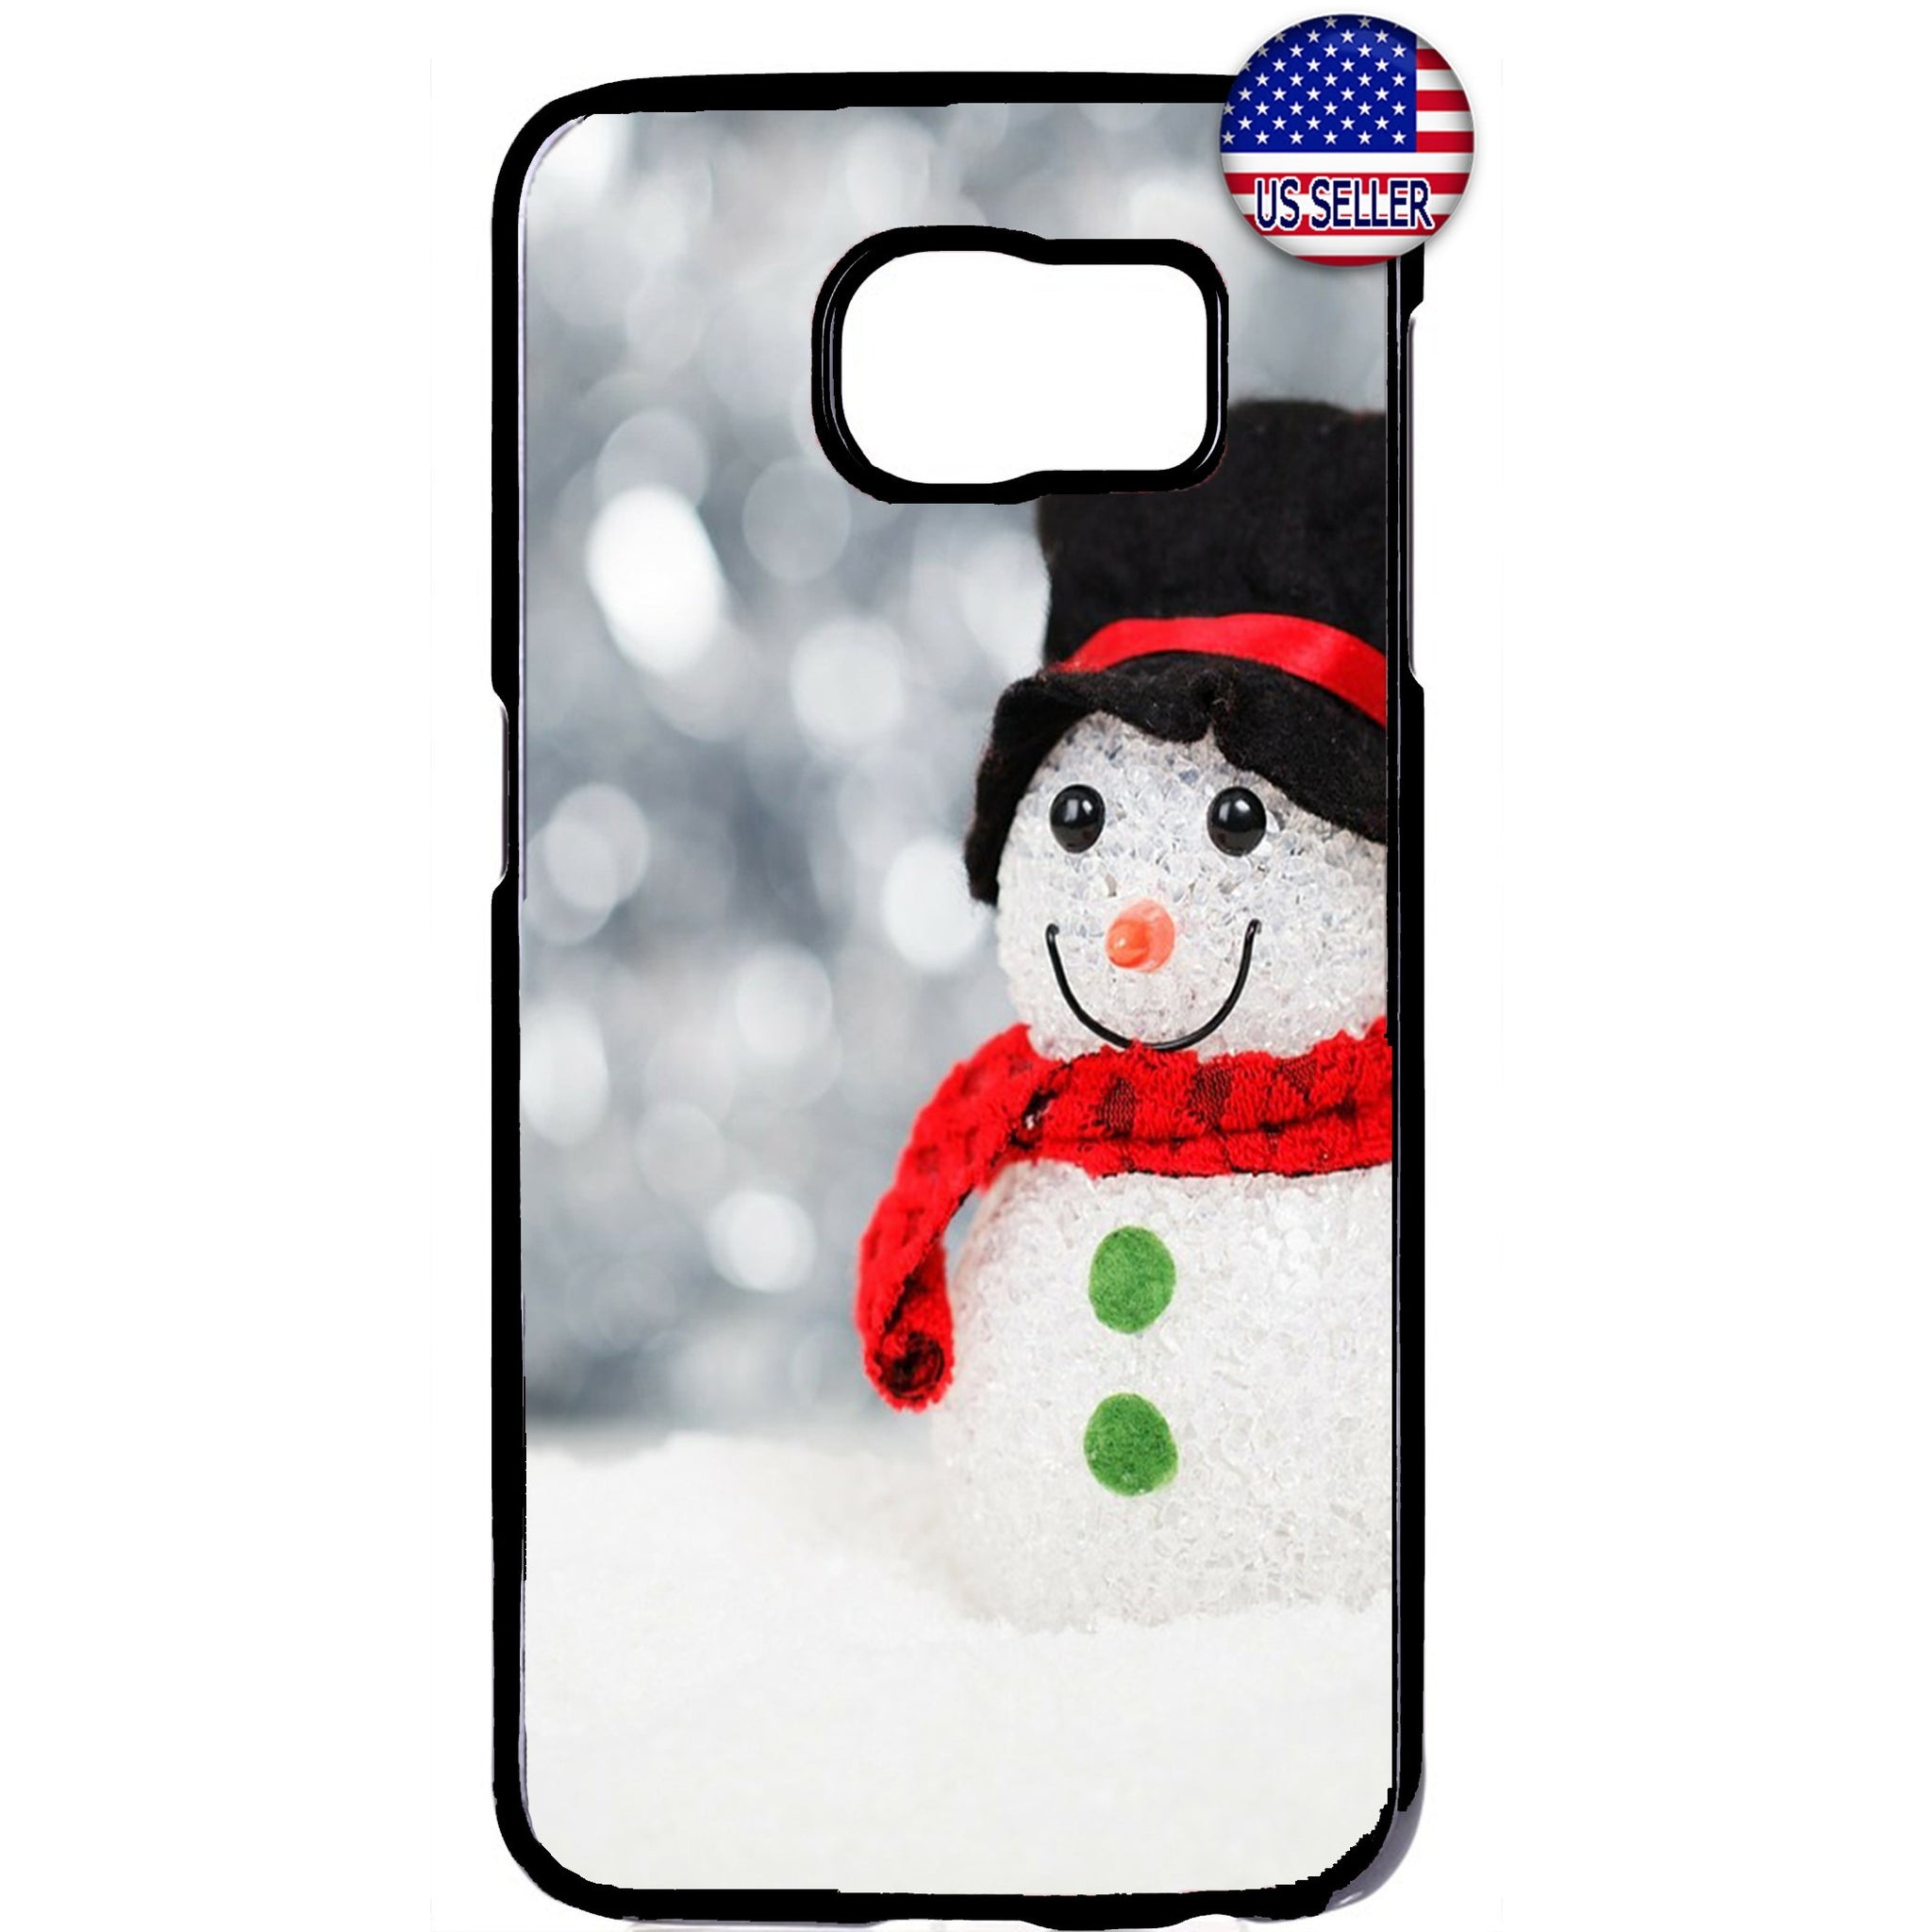 Merry Christmas Snowman Gift Rubber Case Cover For Samsung Galaxy